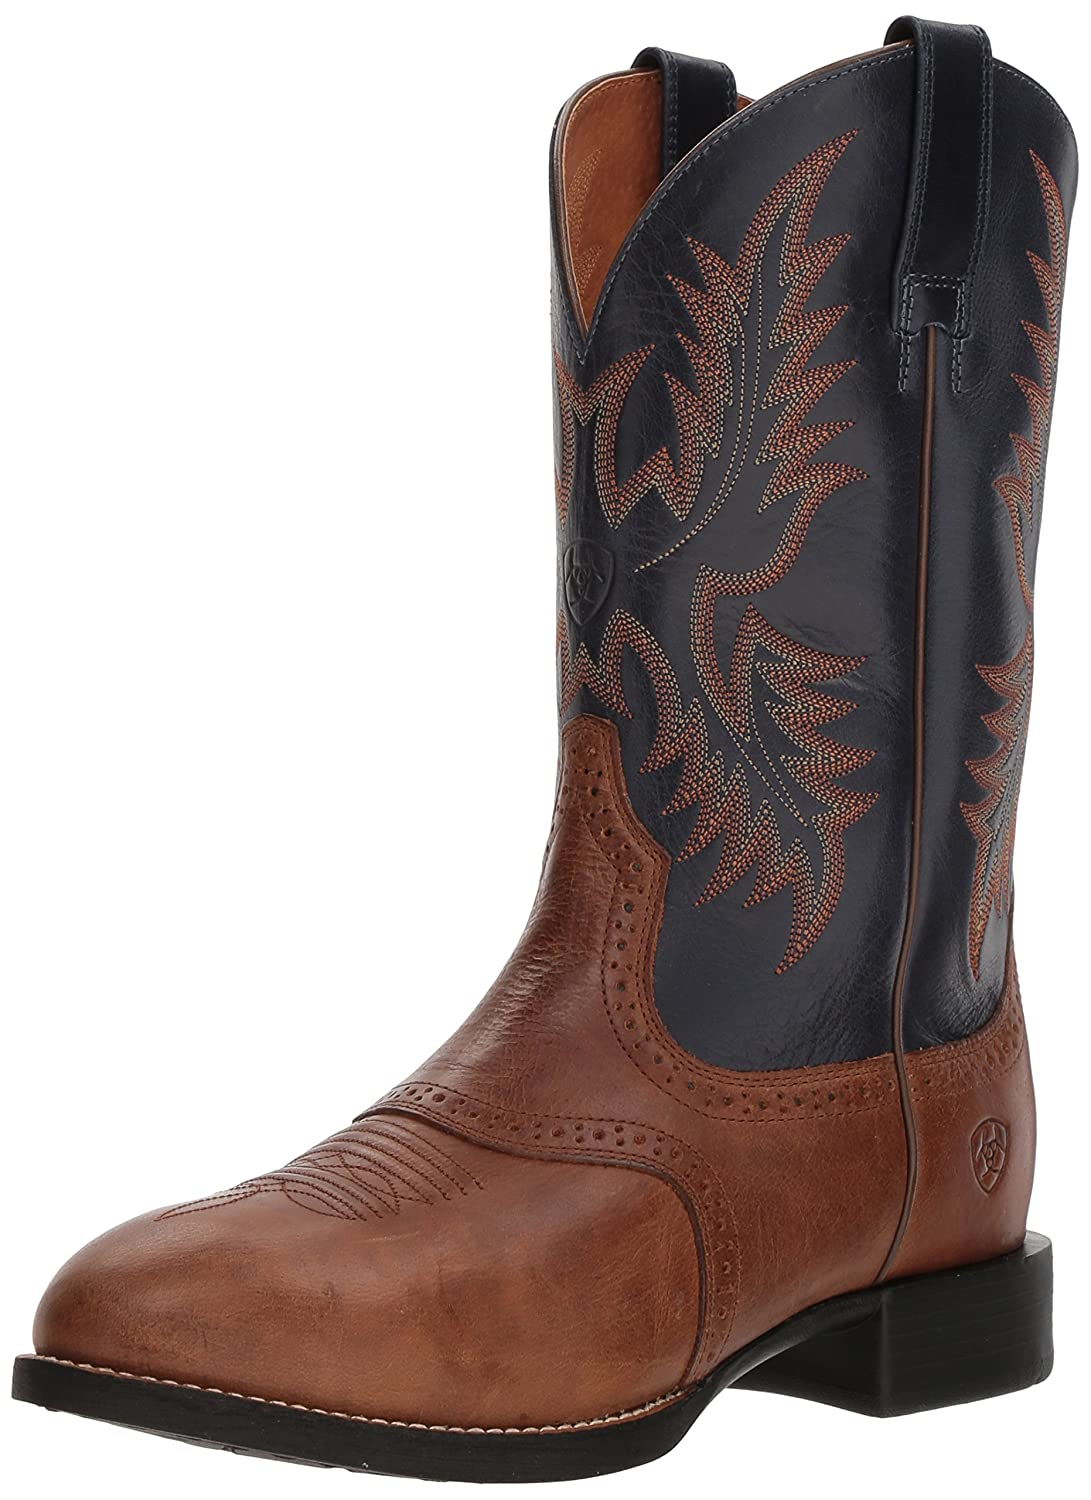 Ariat Men's Heritage Stockman Western Boot B00NVIV8FE 11.5 D(M) US|Sandstorm/Arizona Sky